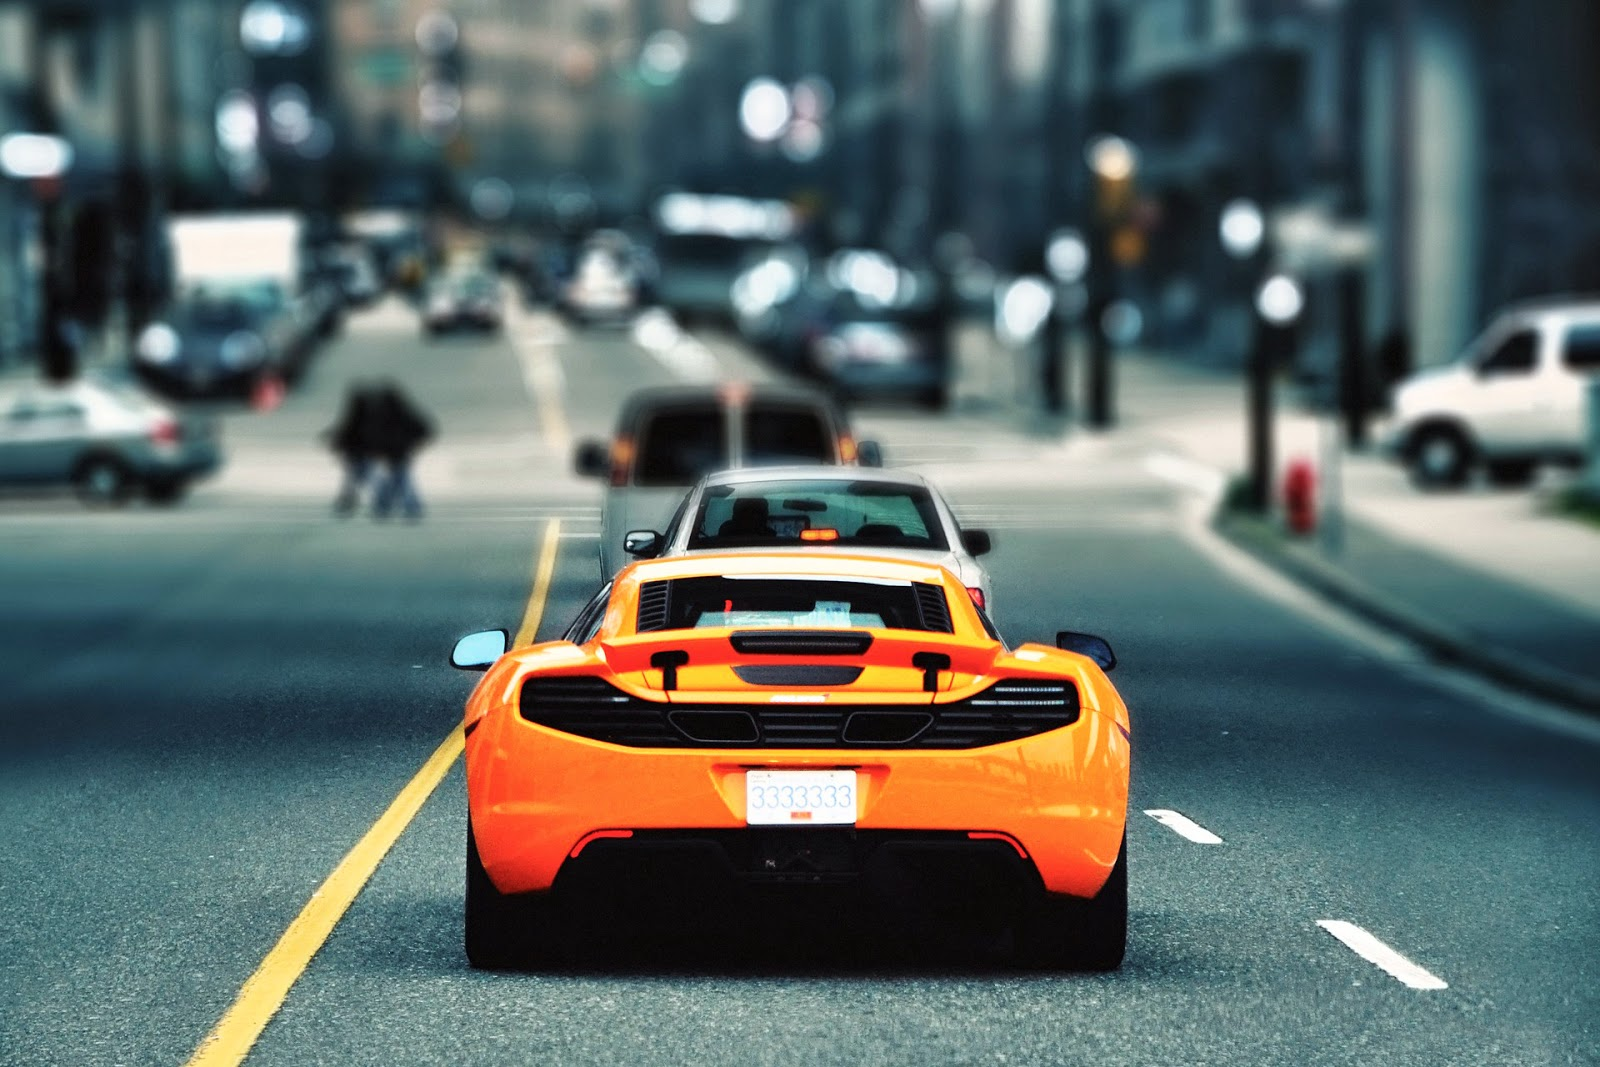 Allinallwalls : Car Wallpapers 2014, Iphone Car, Fast Cool